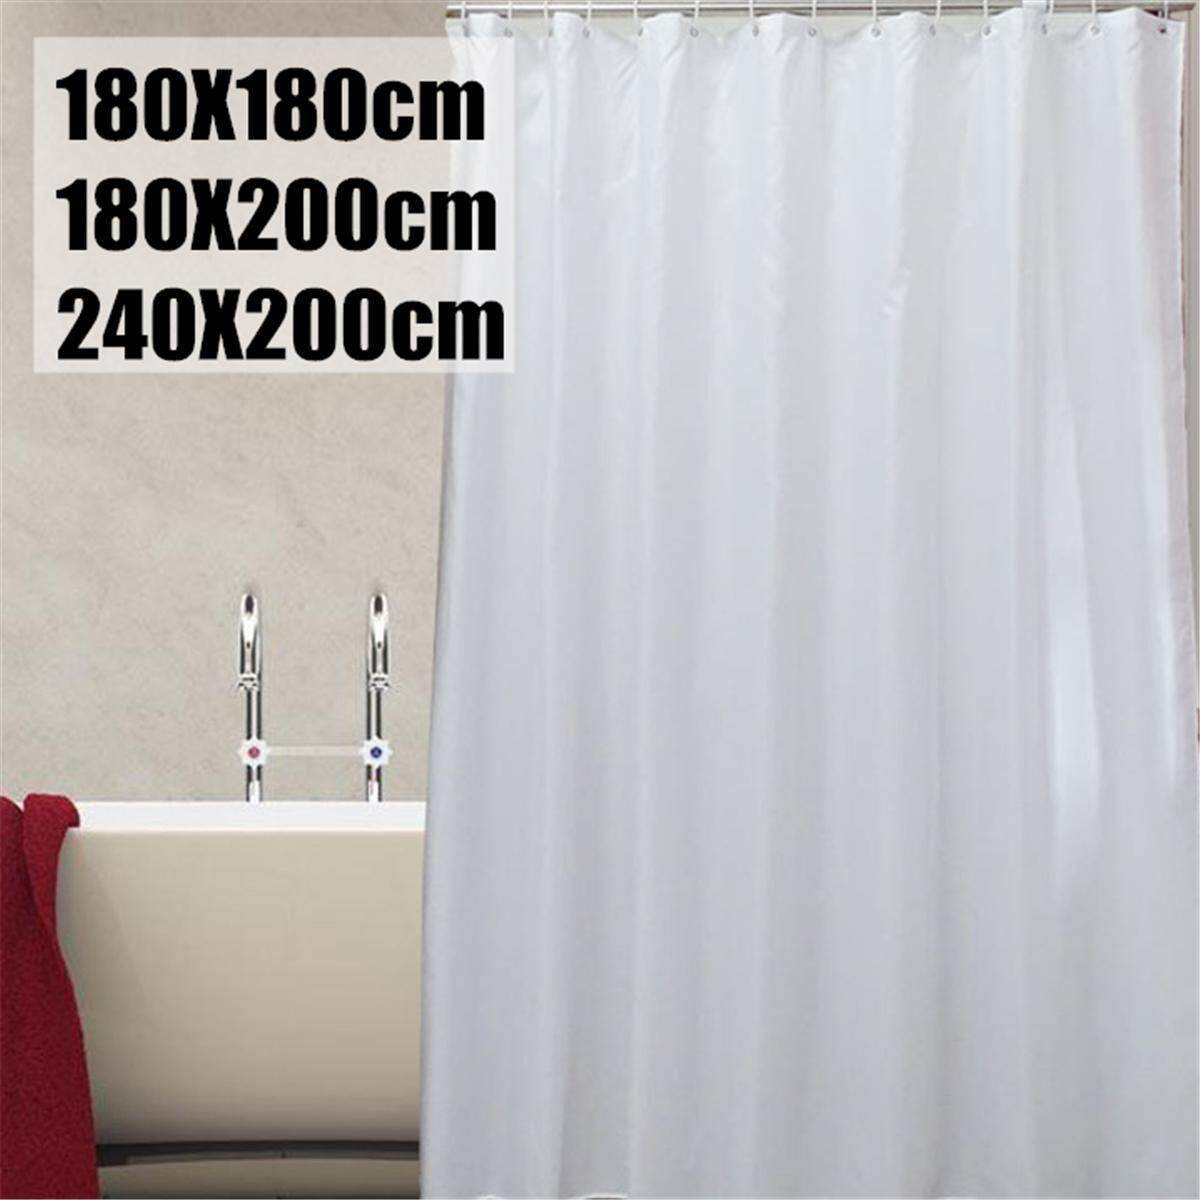 Plain White Fabric Shower Curtain With Hook Rings Hangers 180 180cm